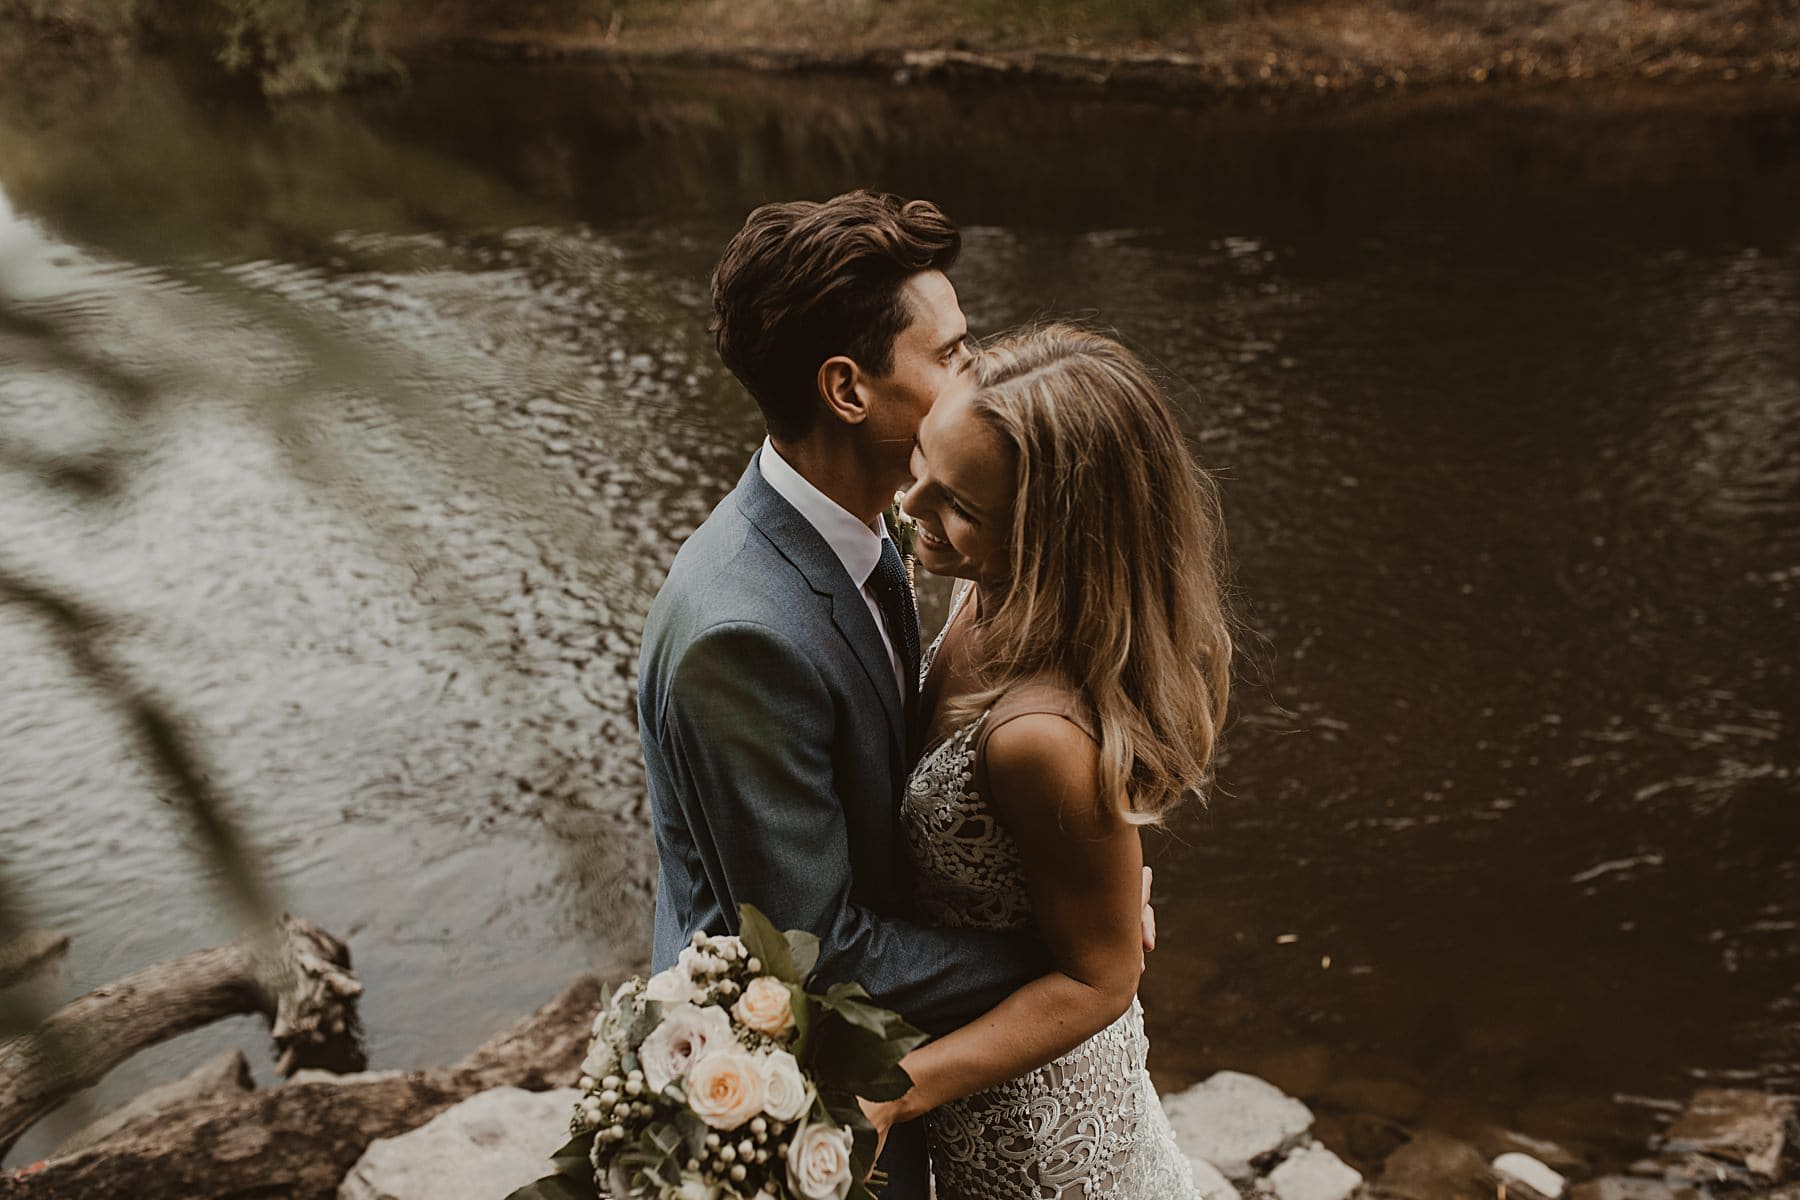 cuddling by a river - relaxed wedding photography